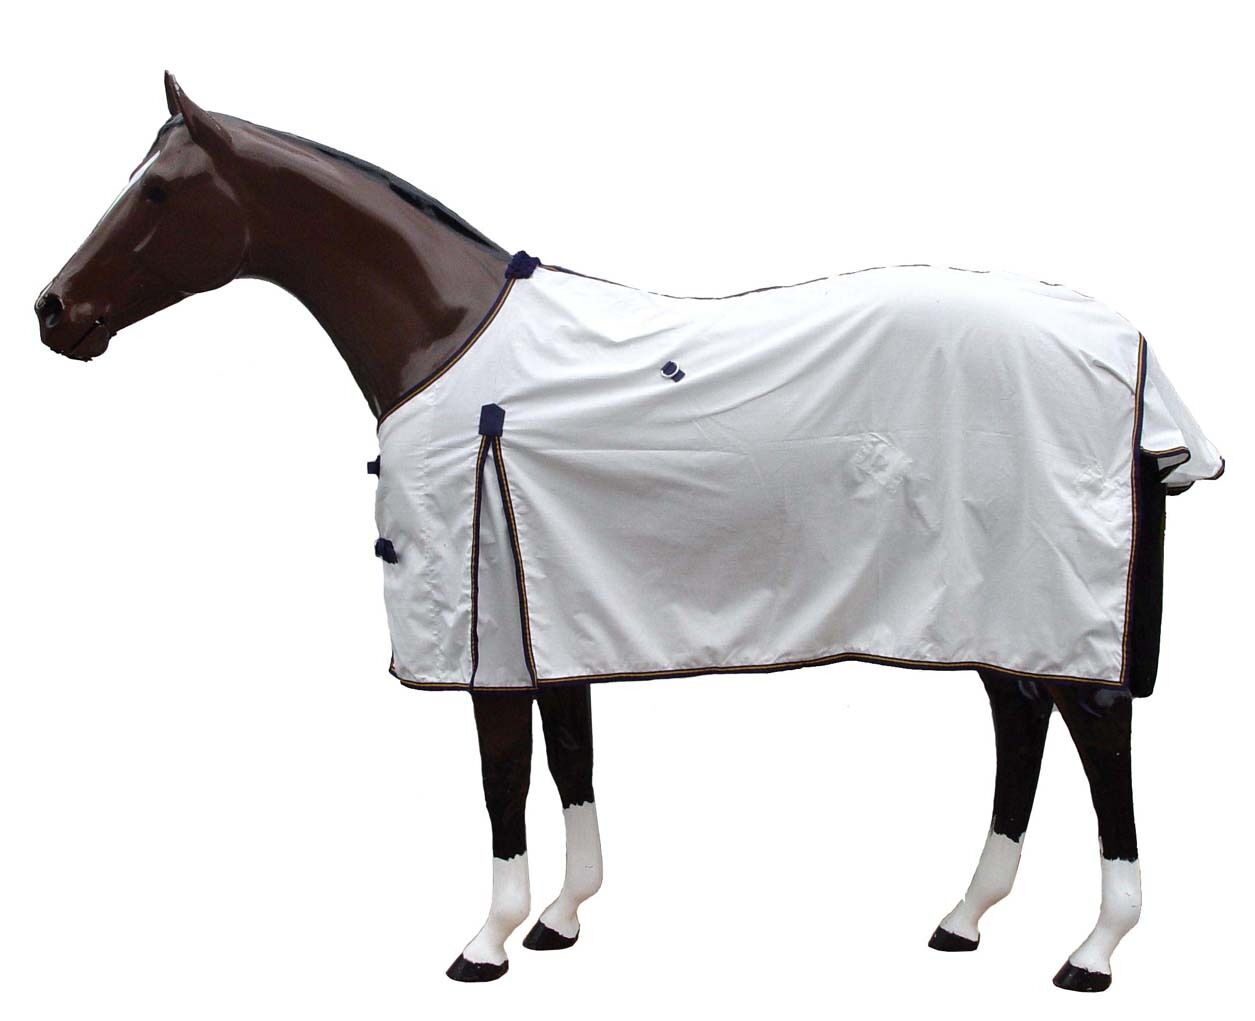 Horse Rug Kool-White Summer RugLight & Breathable  Soft Cotton   All sizes